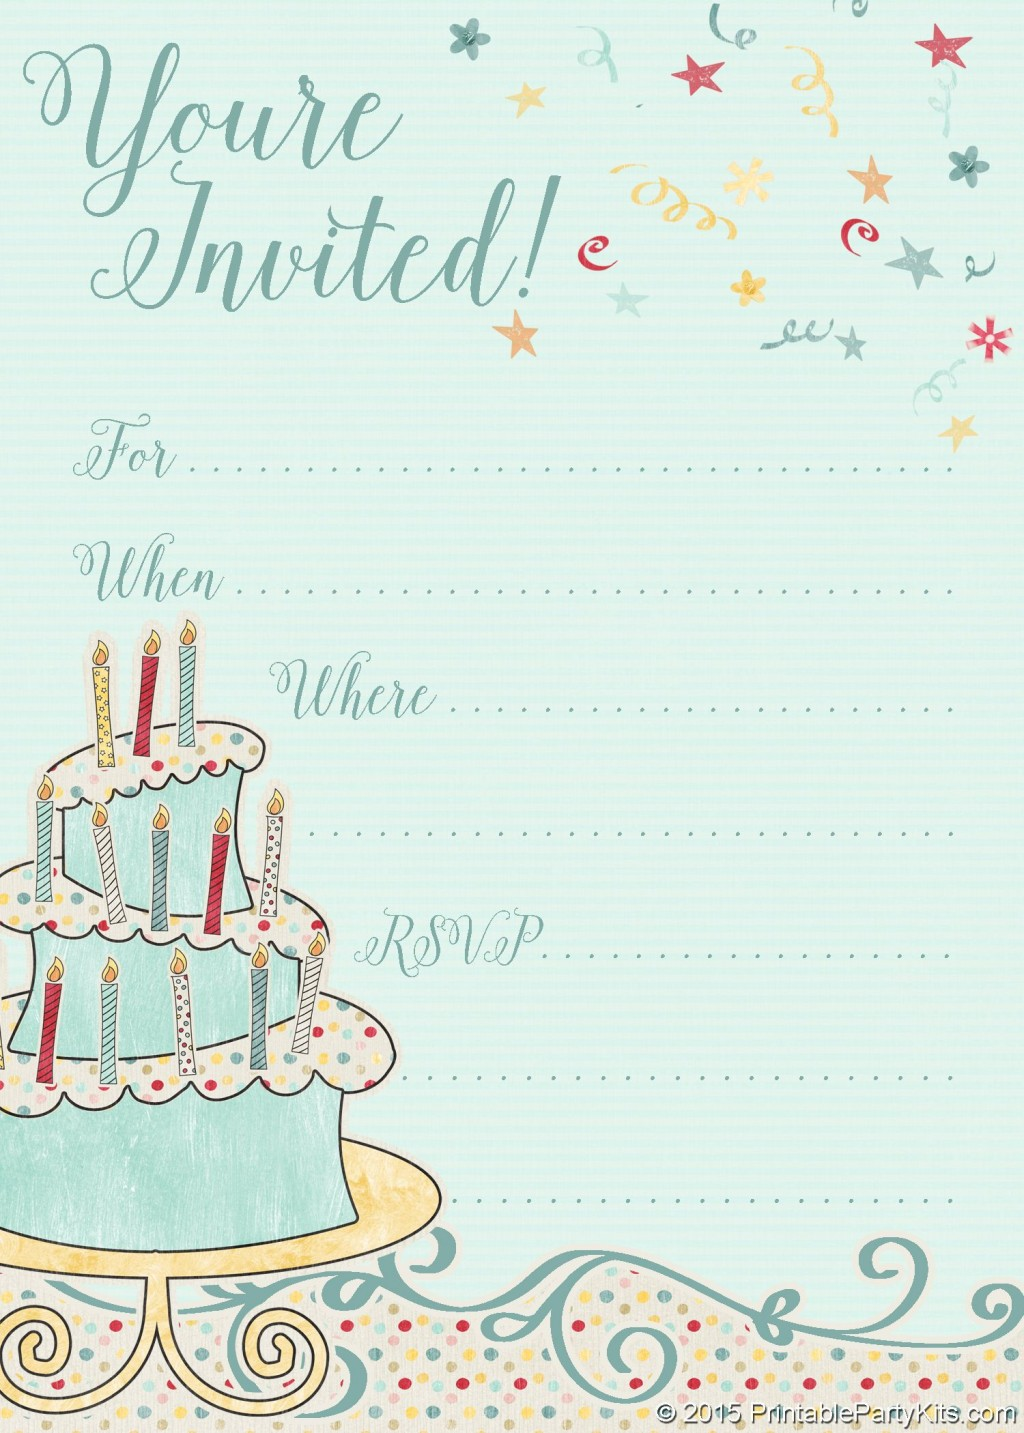 000 Impressive Free Online Birthday Party Invitation Template Picture  Templates MakerLarge